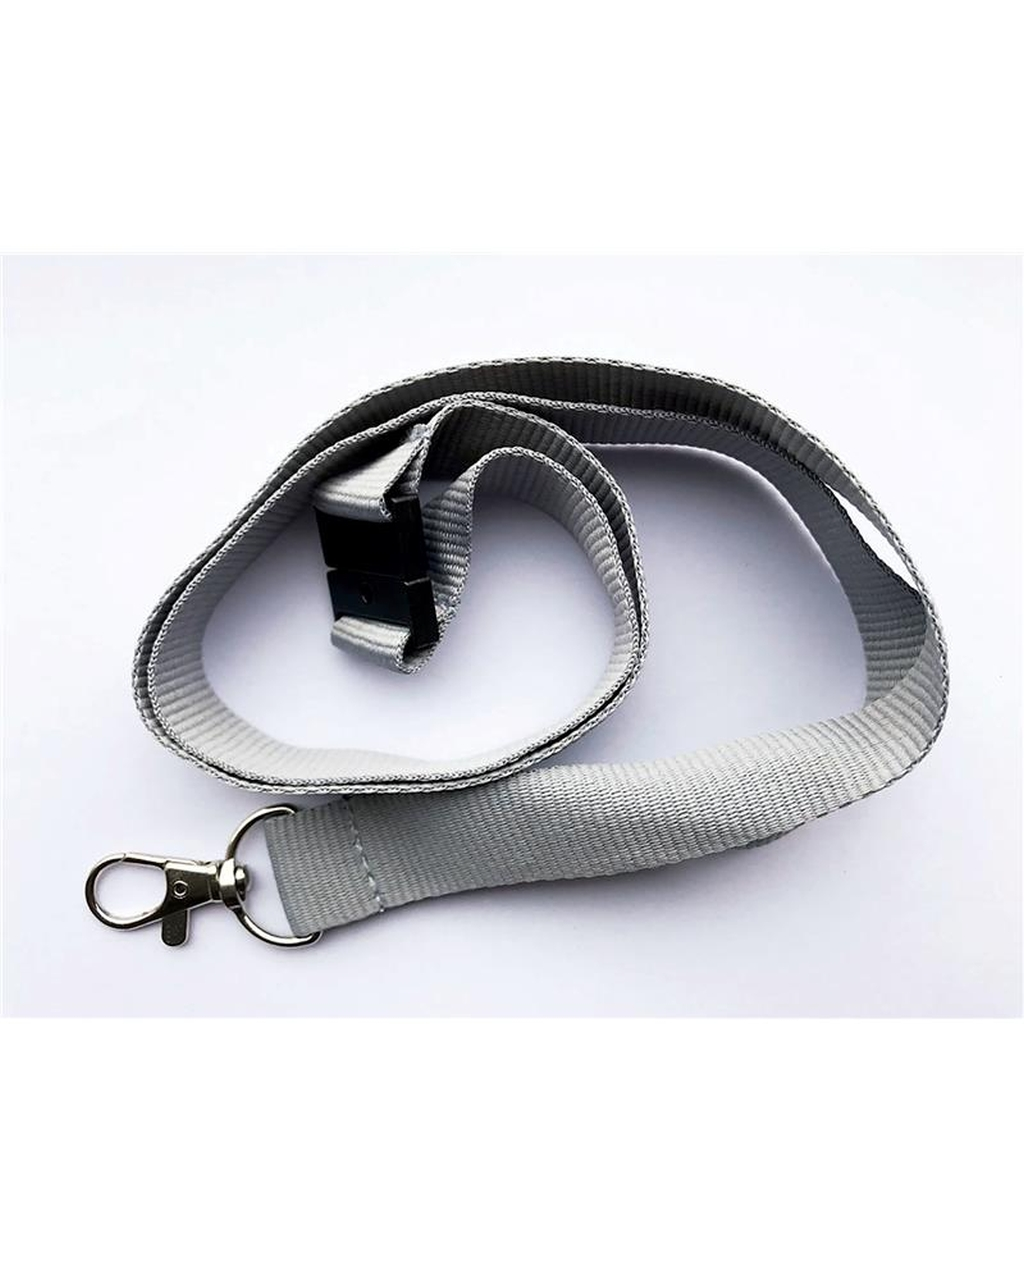 20Mm Lanyards Plain Greypack Of 10